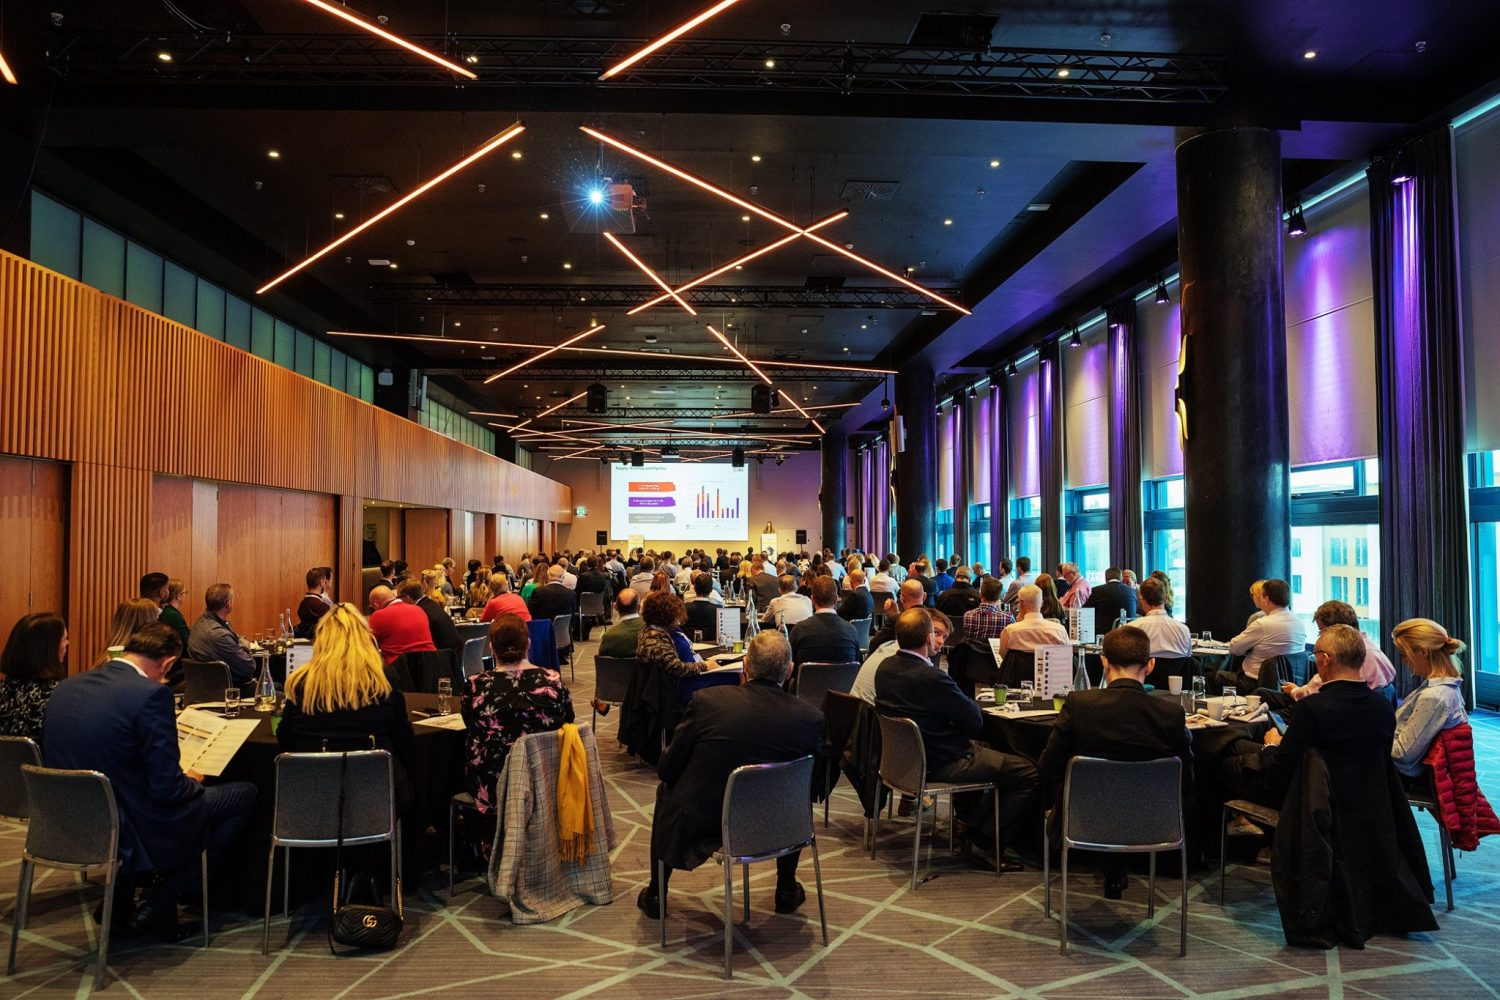 Greyhound Commercial at the Property Management and Facility Management Conference 2019 in Croke Park